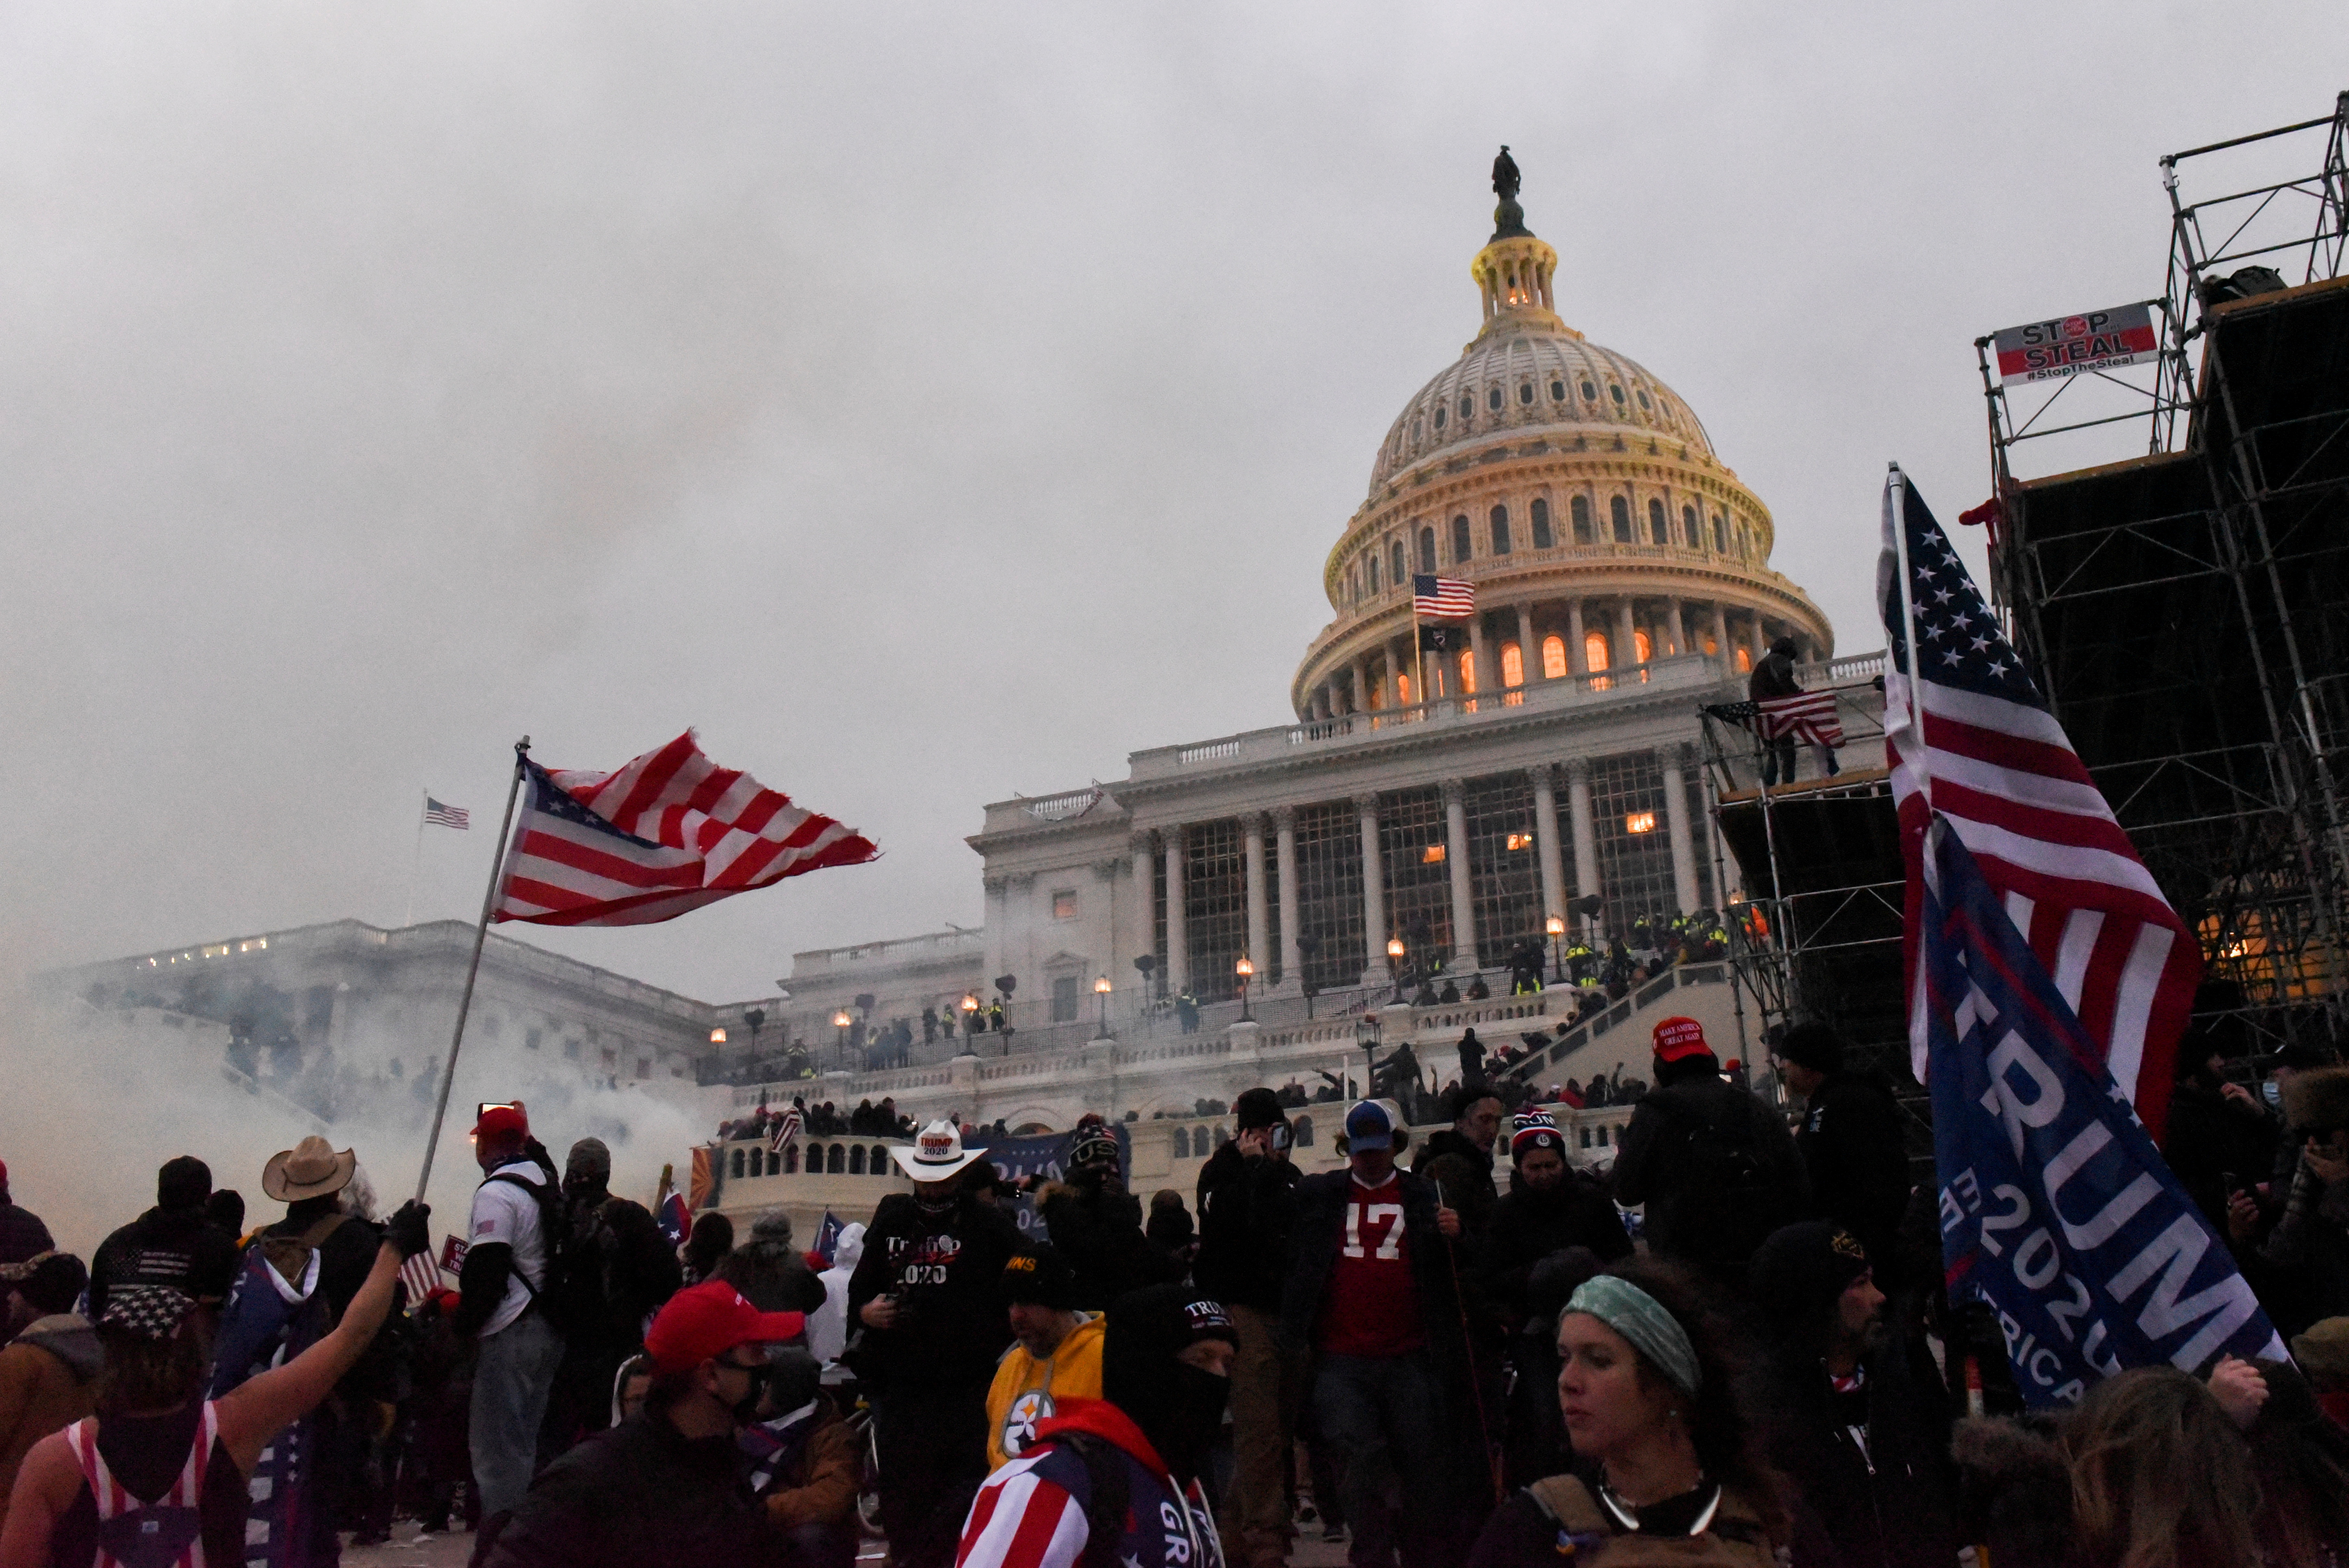 Police attempt to clear the U.S. Capitol Building with tear gas as supporters of U.S. President Donald Trump gather outside, in Washington, U.S. January 6, 2021. REUTERS/Stephanie Keith/File Photo